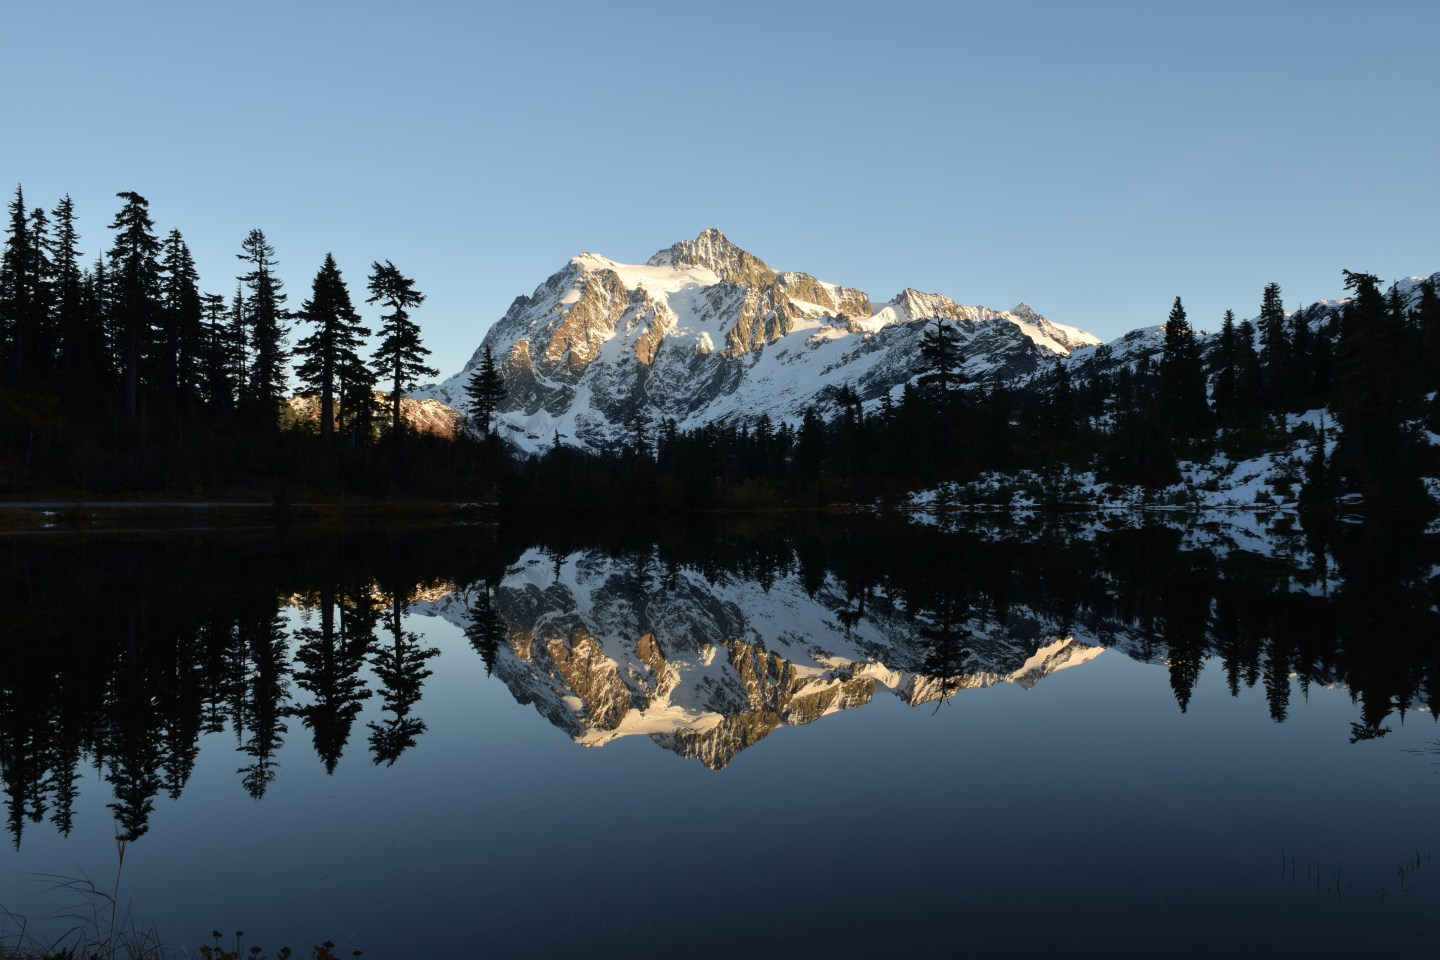 Mt. Shuksan. We offer photography, web design and travel planning services.